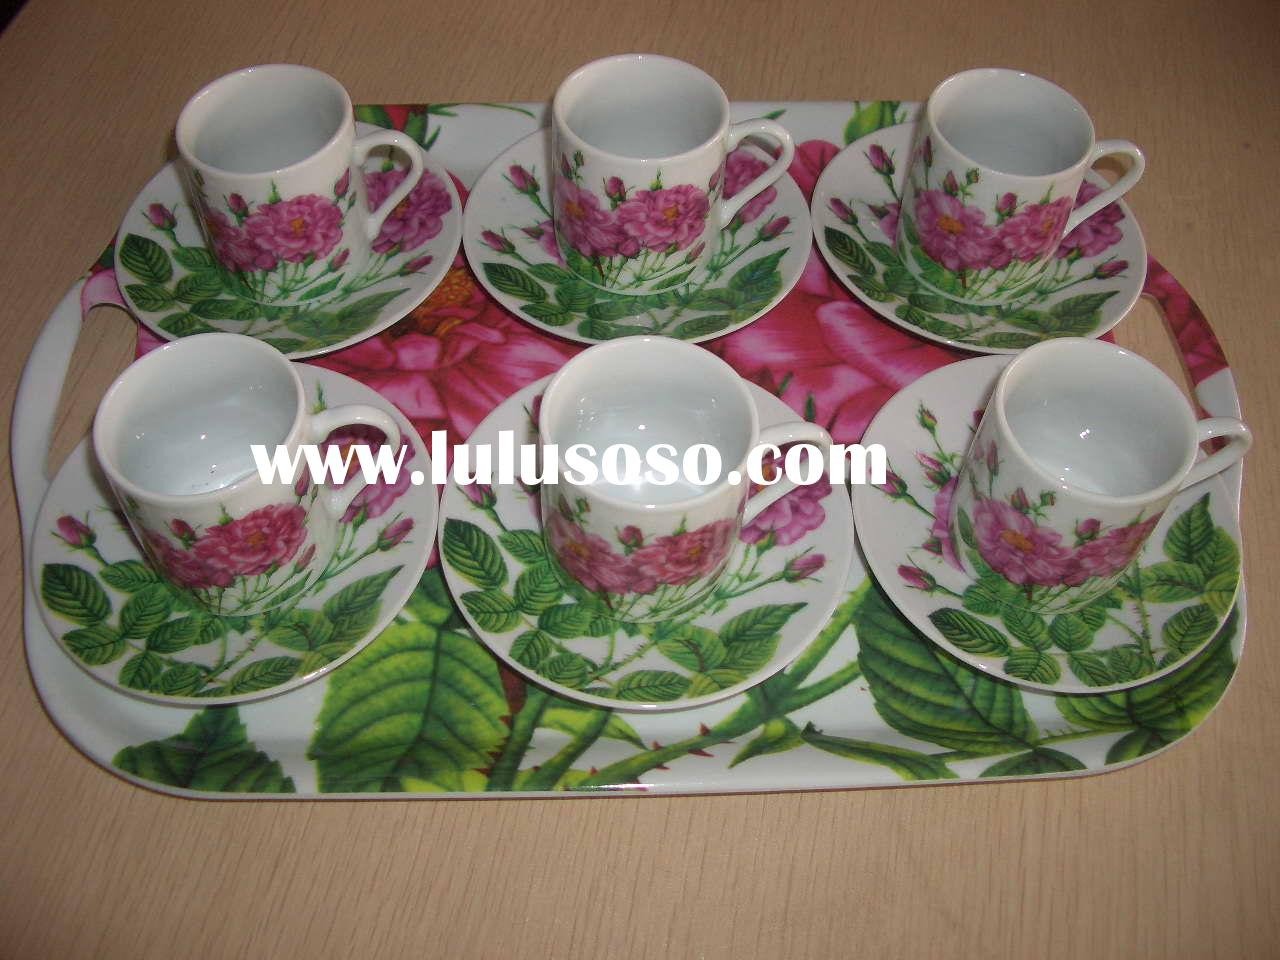 13 pcs tea set: S/6 porcelain coffee cup and saucer with 1 plastic plate in color box